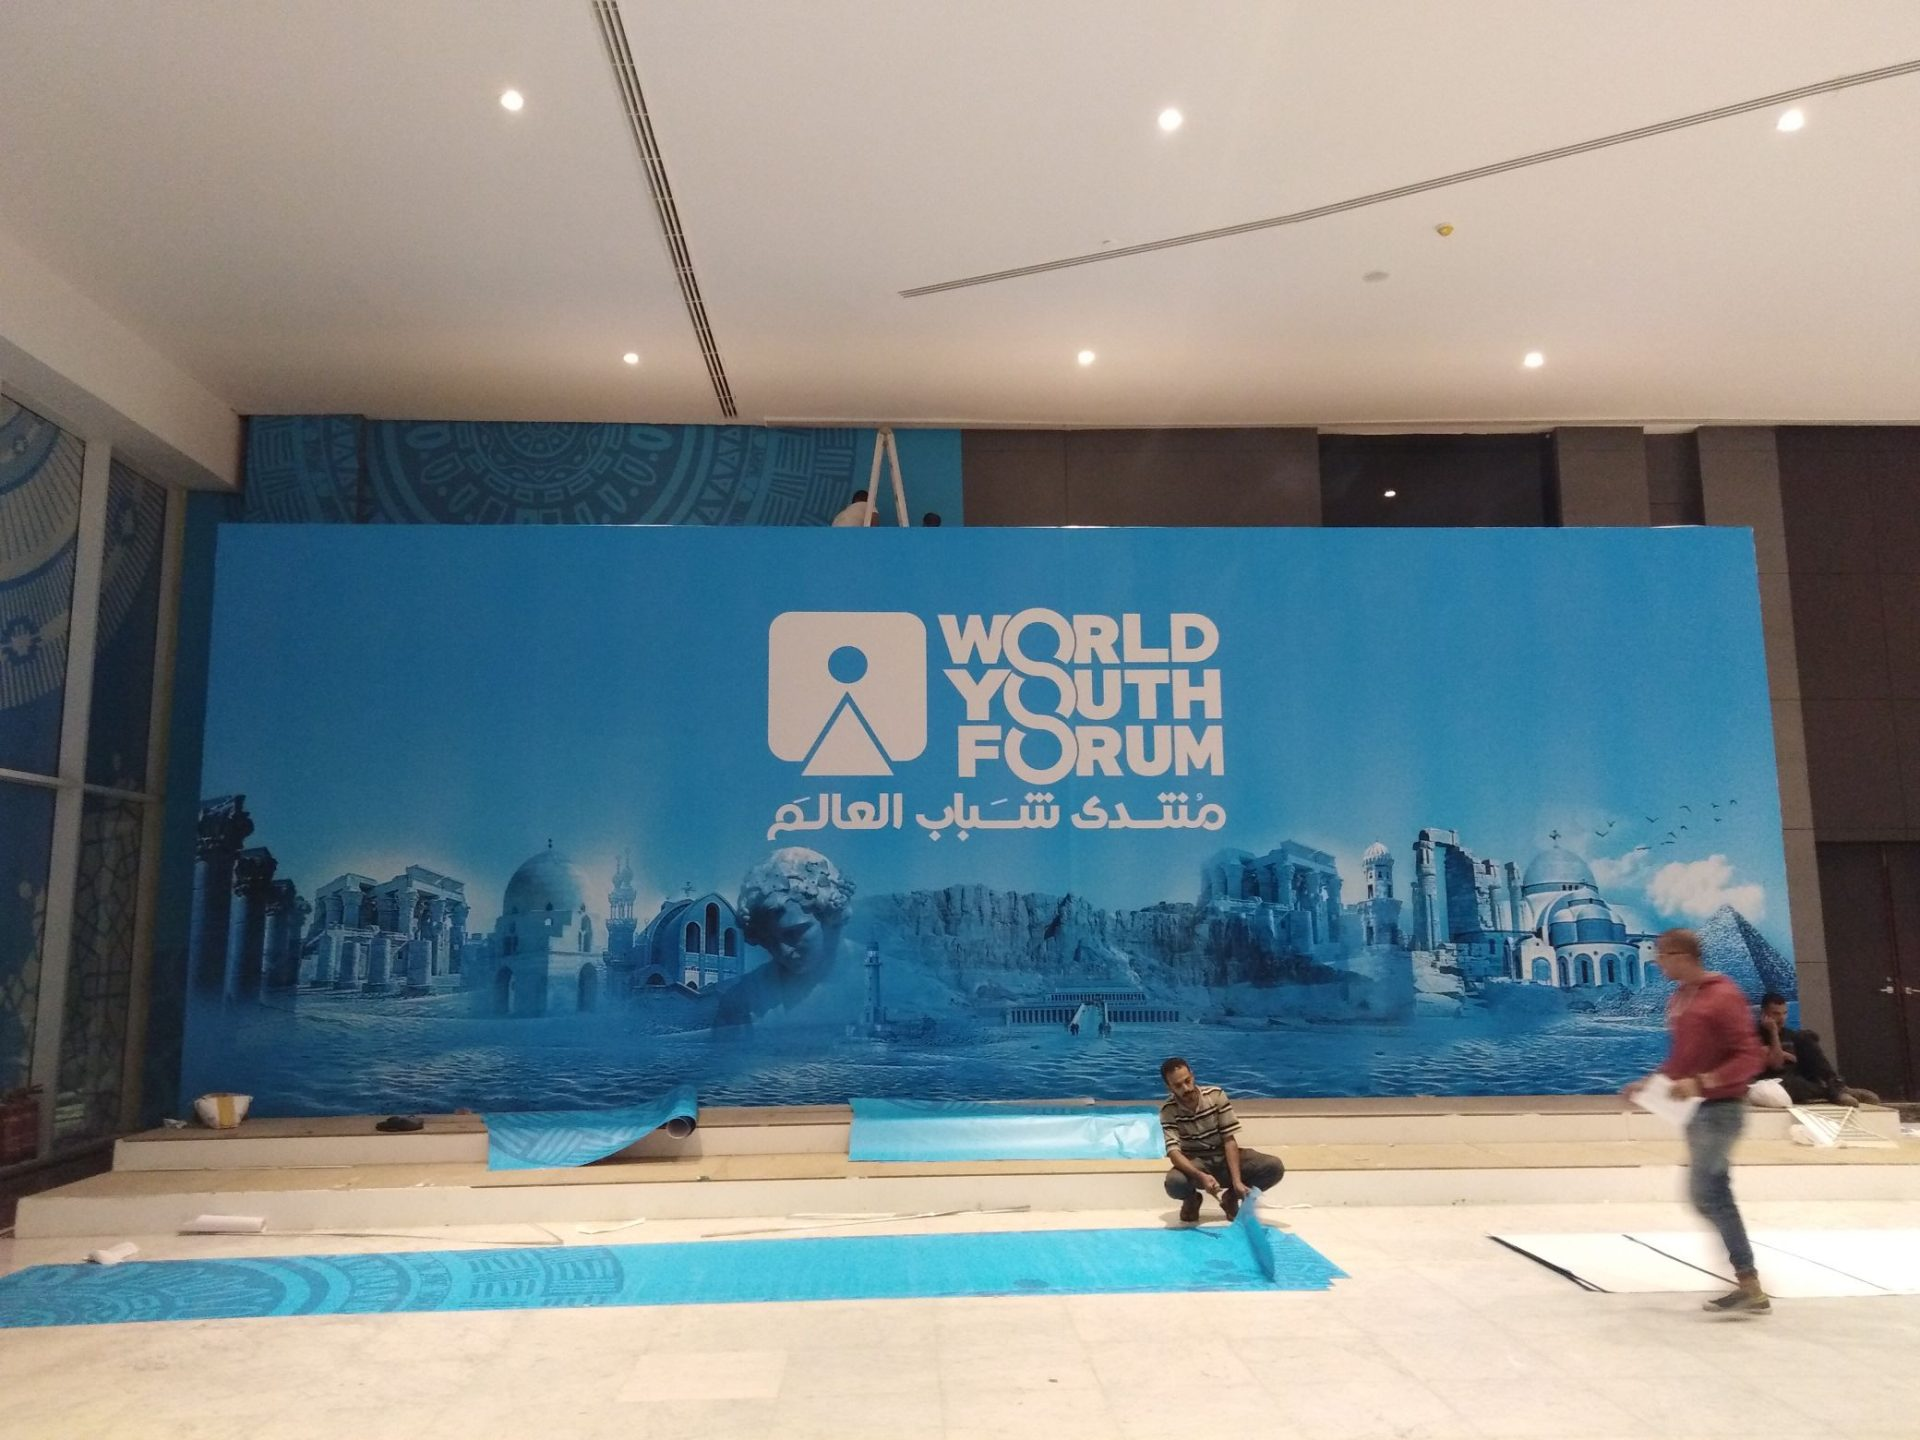 World Youth Forum 18